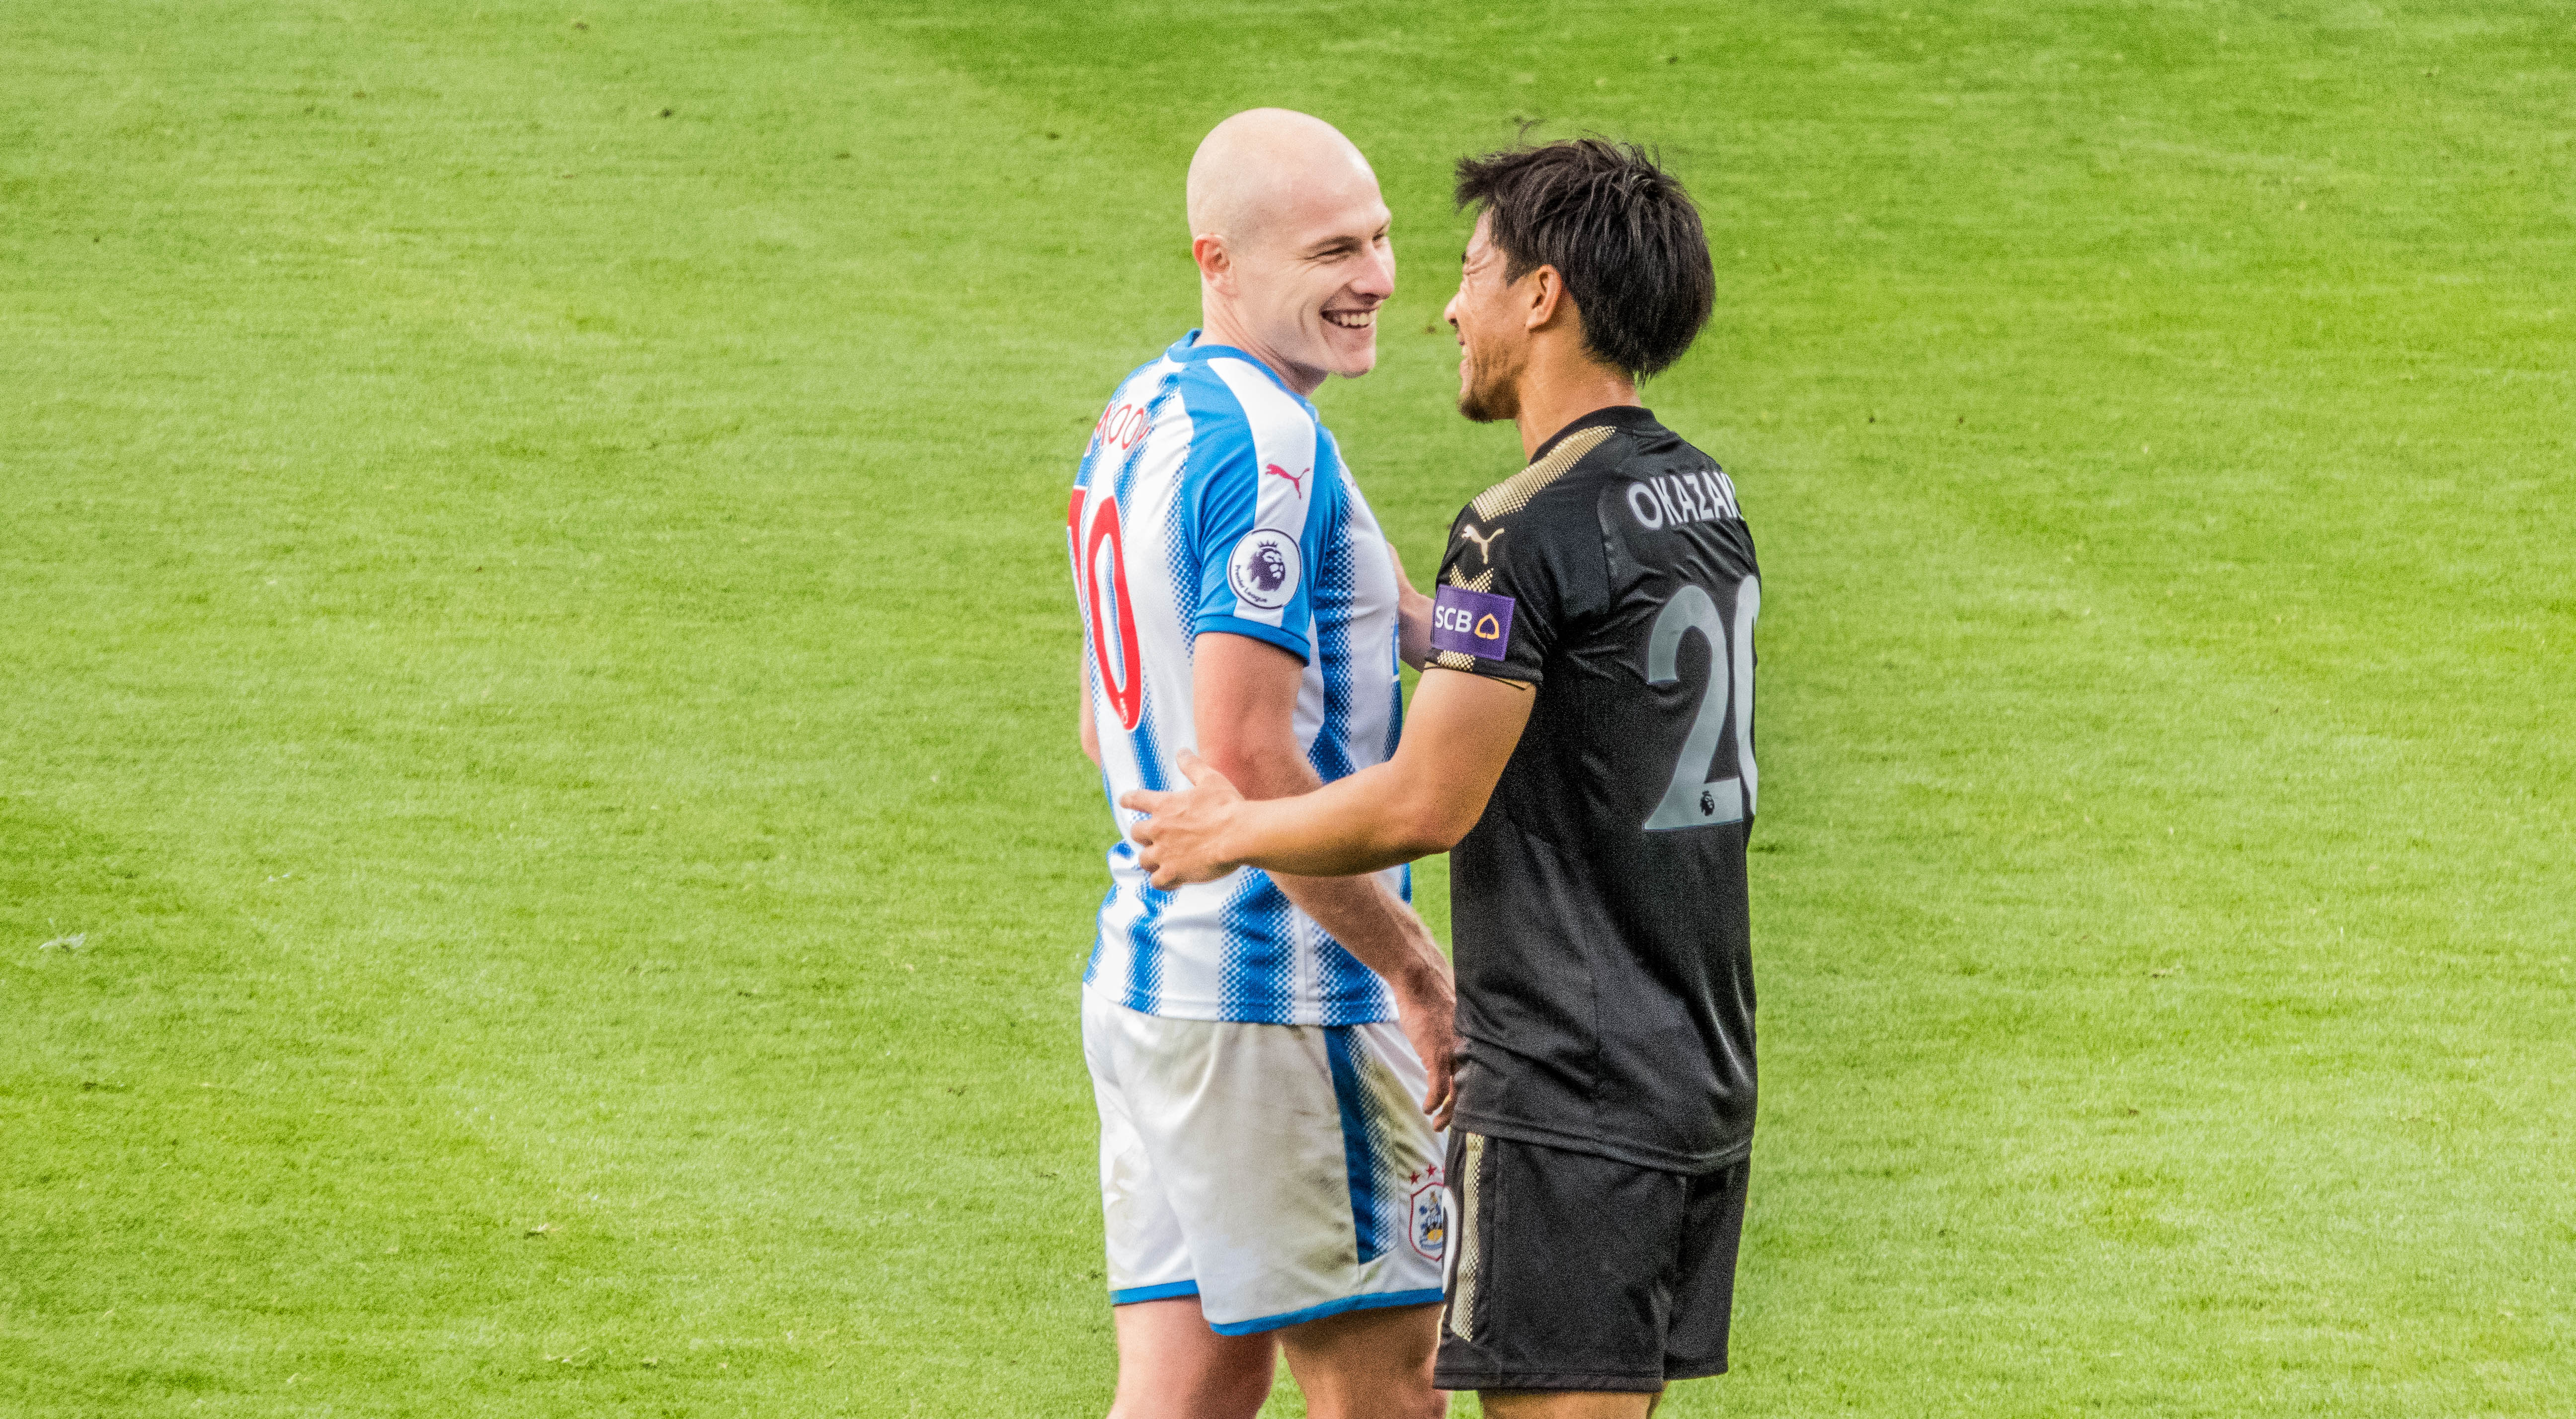 Aaron Mooy and Okasaki share a moment